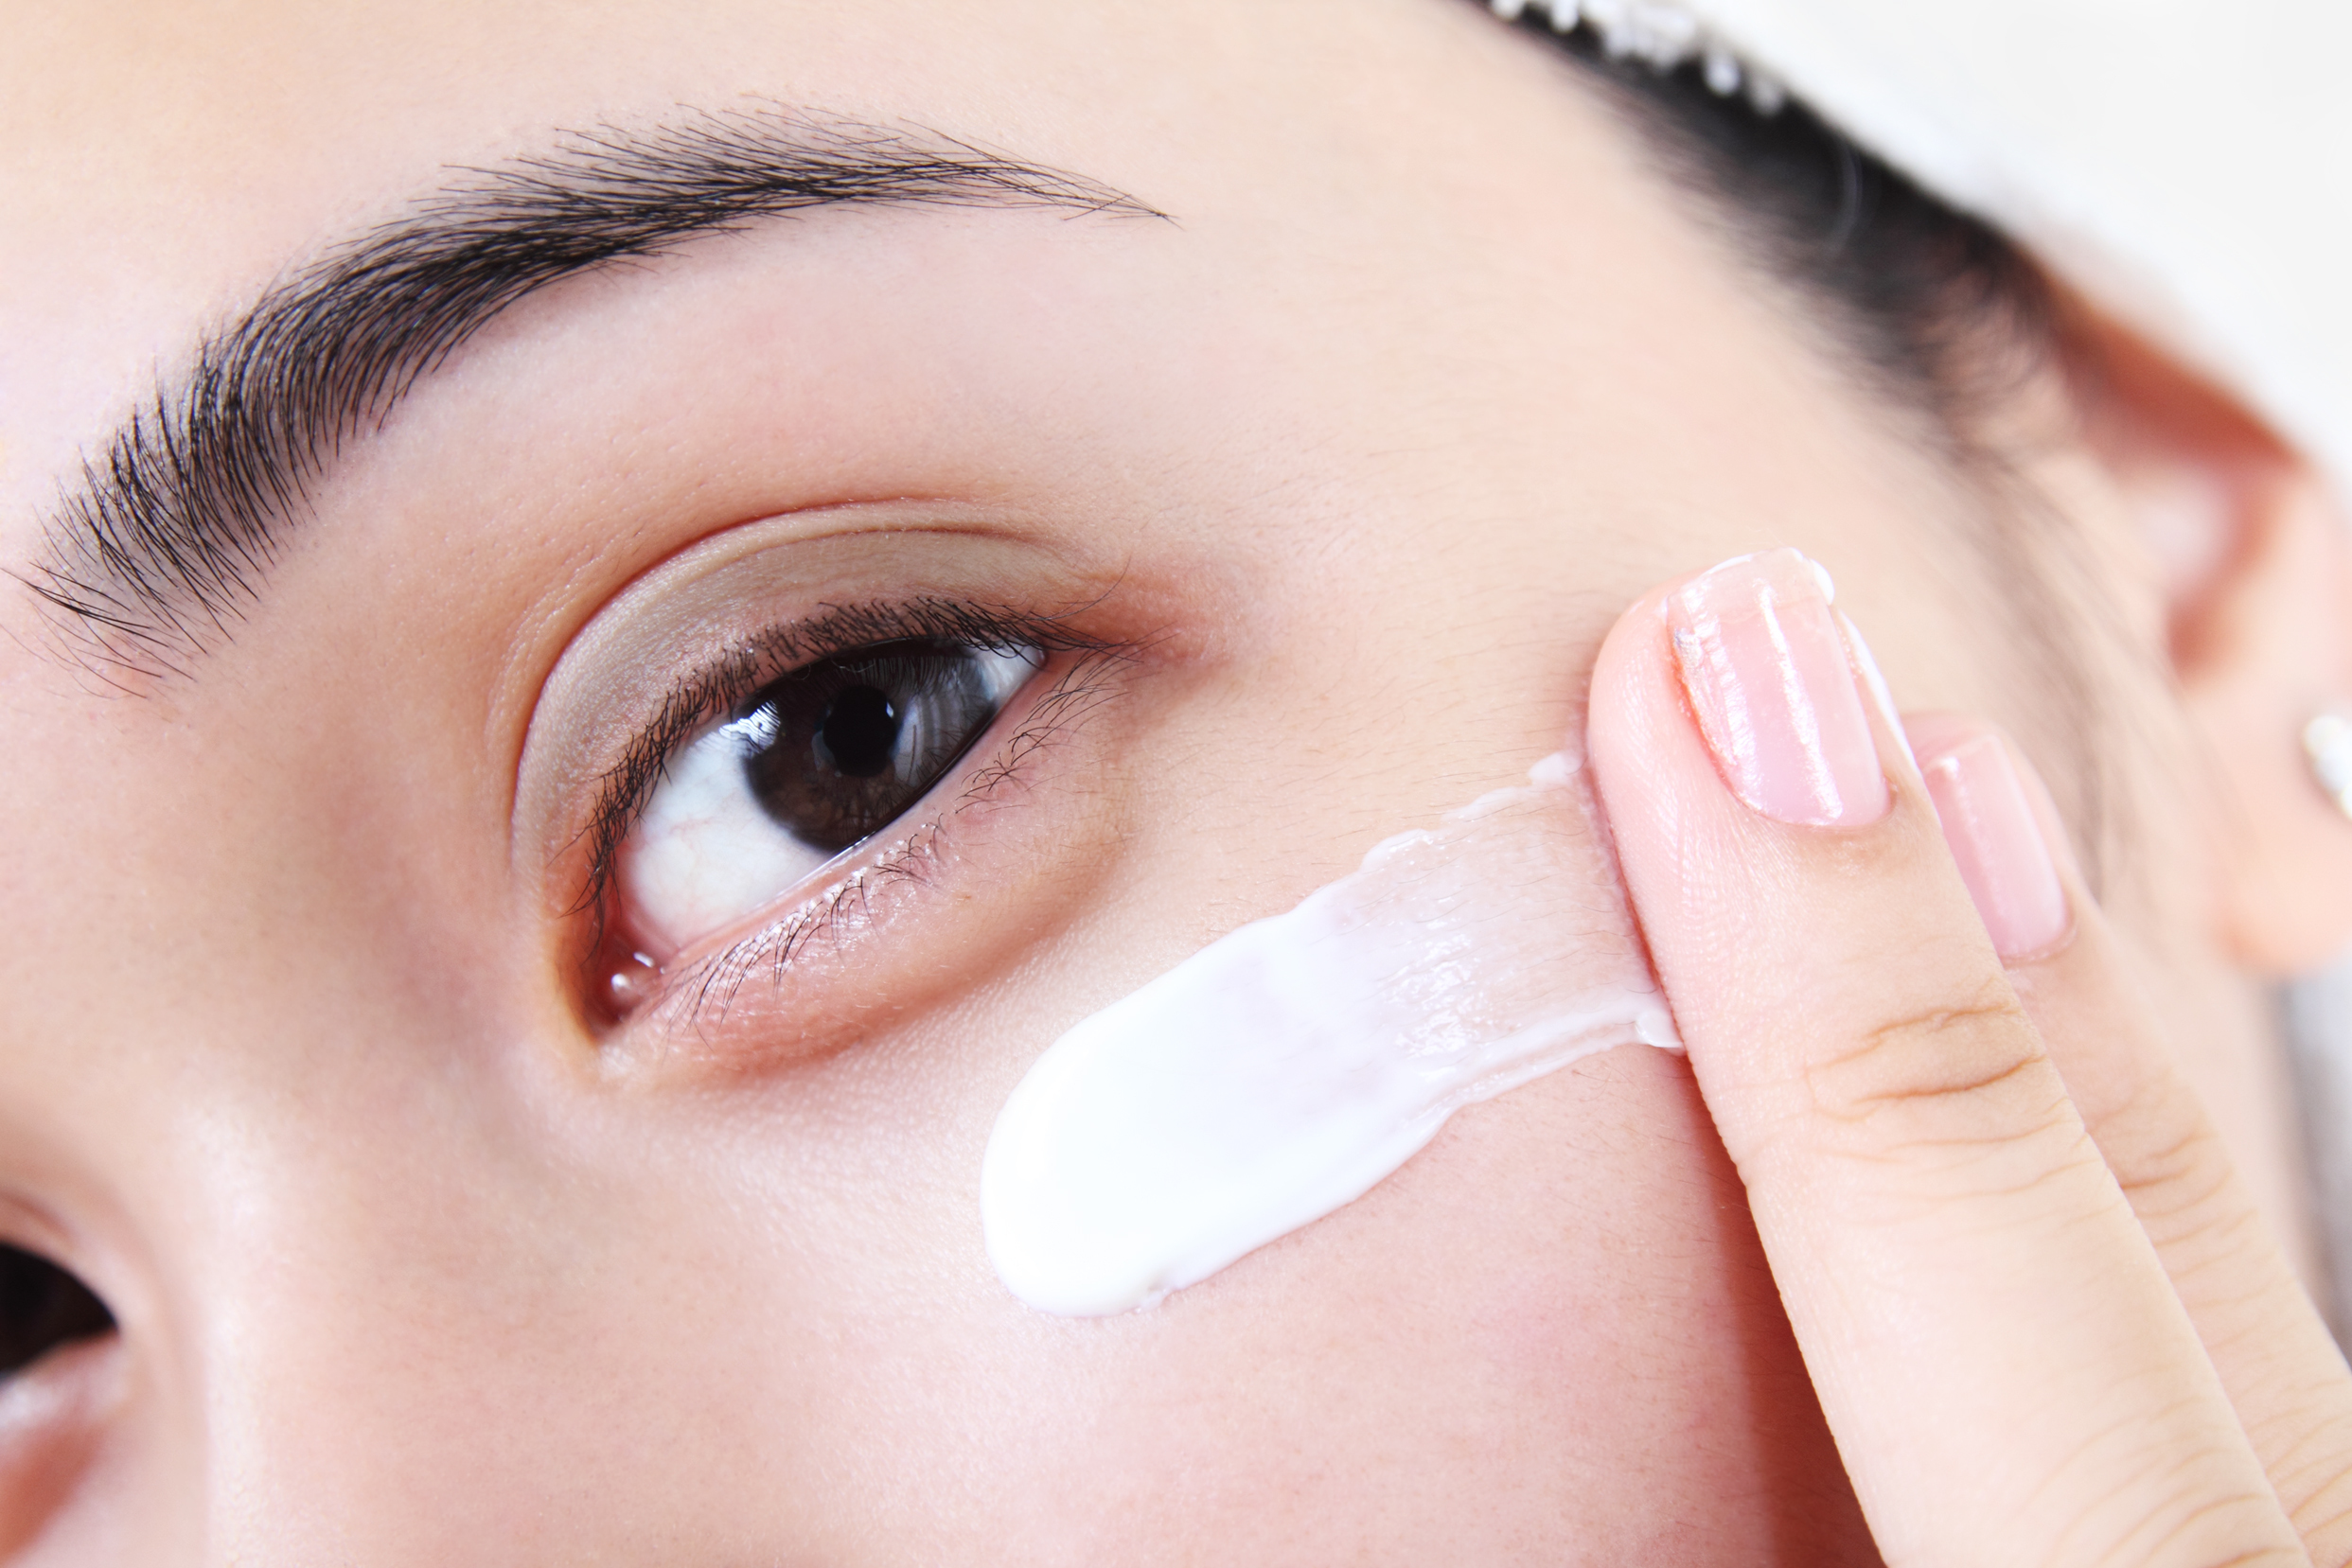 According to dermatologists, this is how your moisturizer should actually make your skin feel